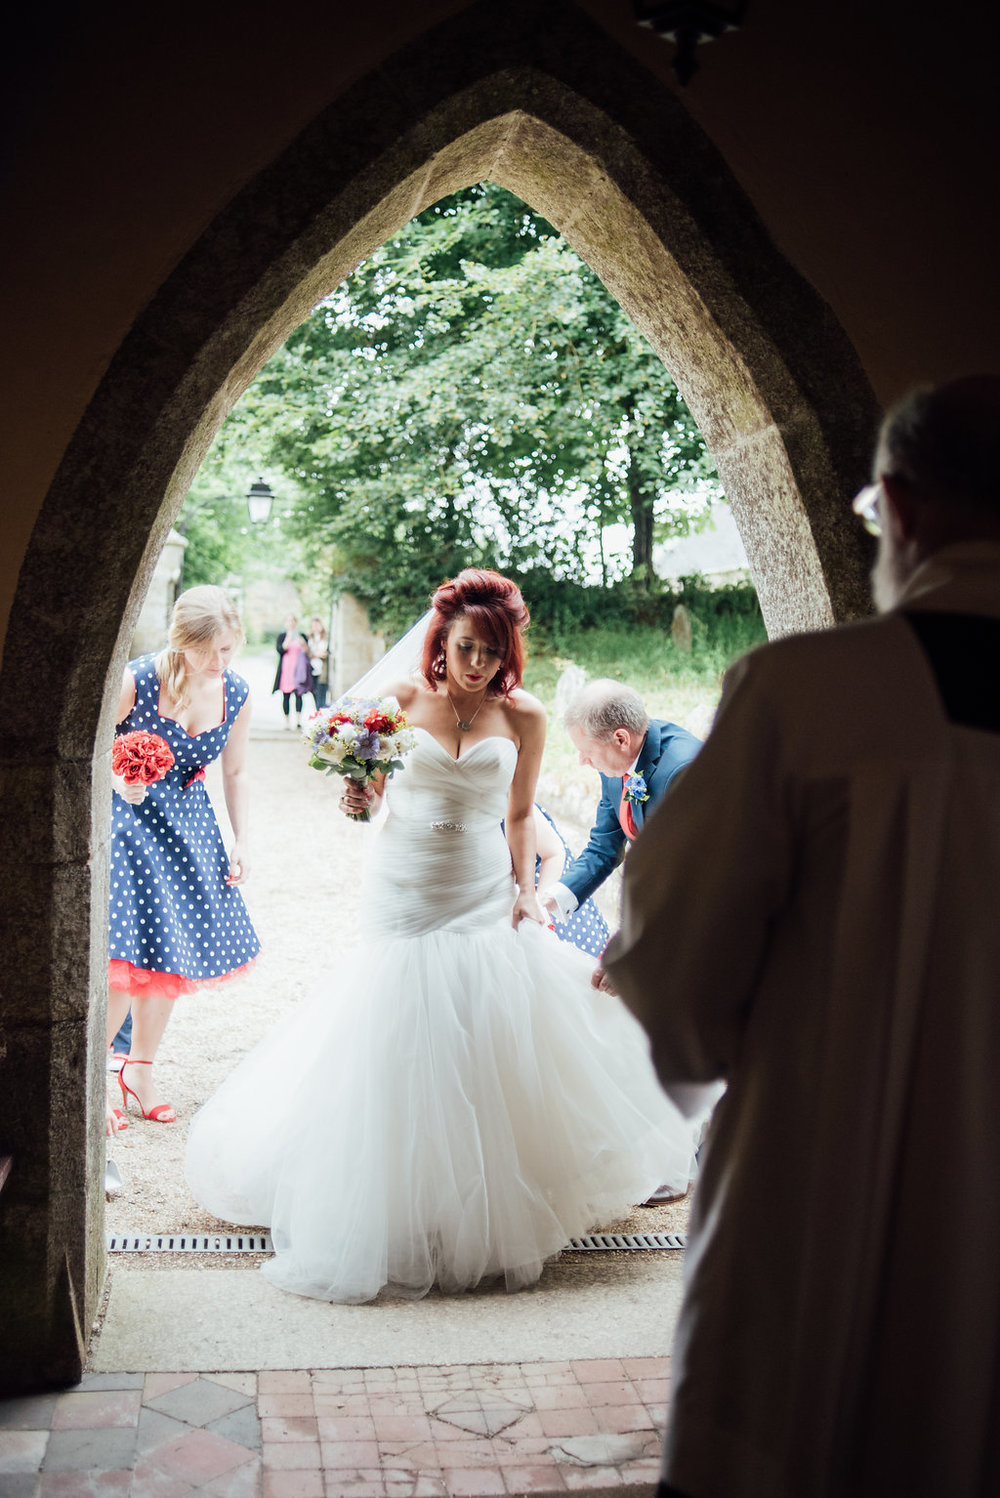 liberty-pearl-photography-cornwall-wedding-porthleven-wedding-red-and-blue-wedding-colour-palette-56